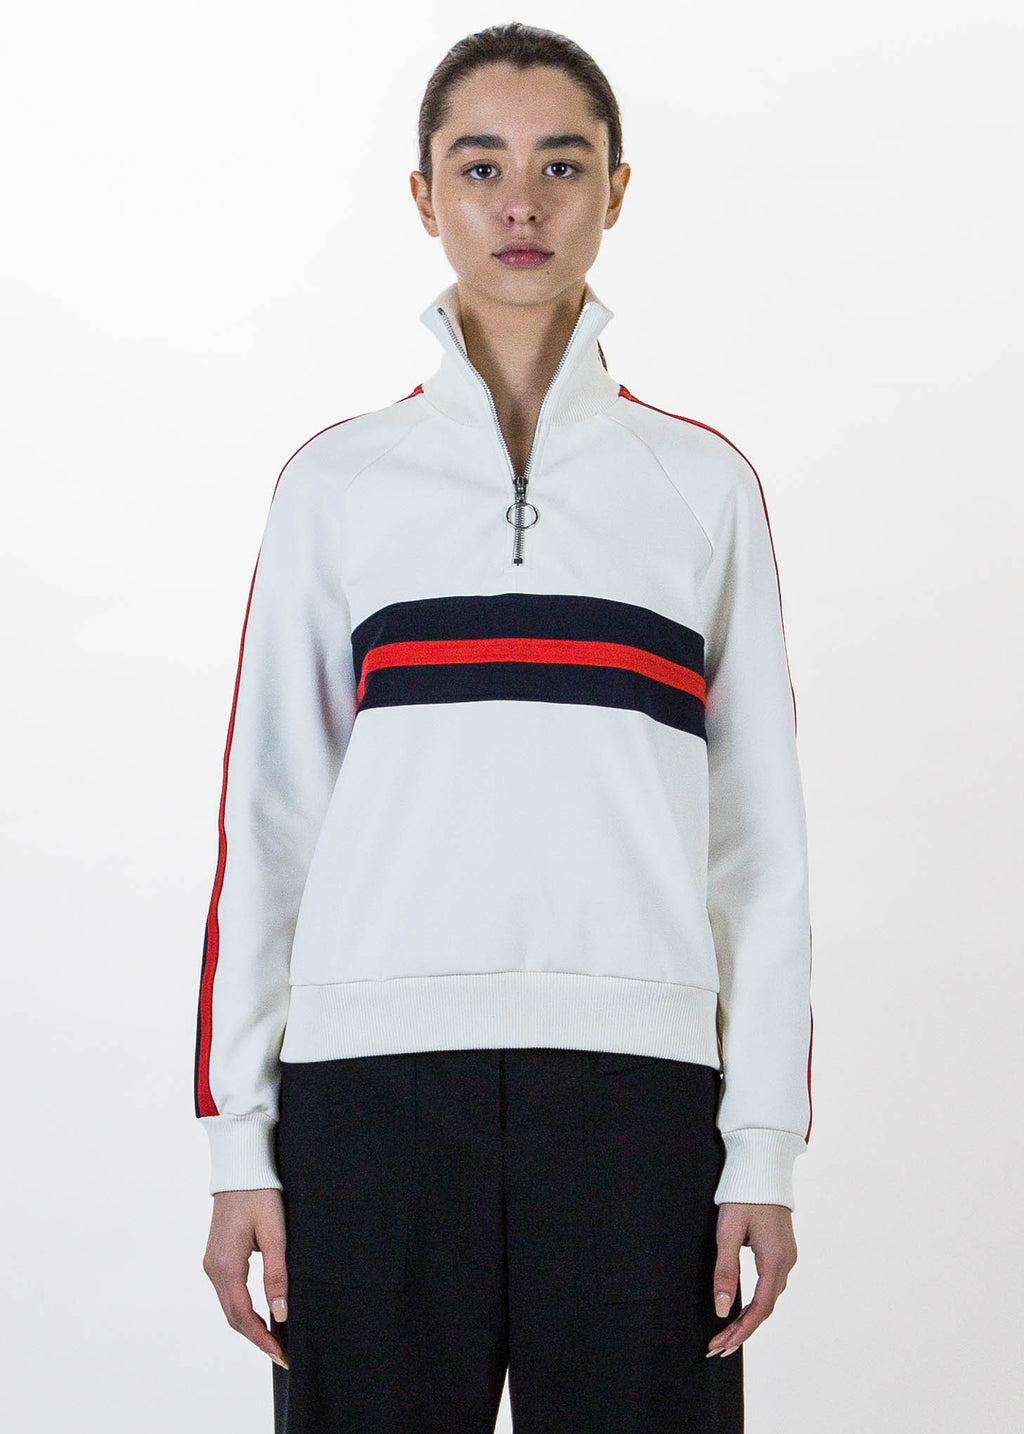 Harmony, Off White Sidonie Sweatshirt, 017 Shop